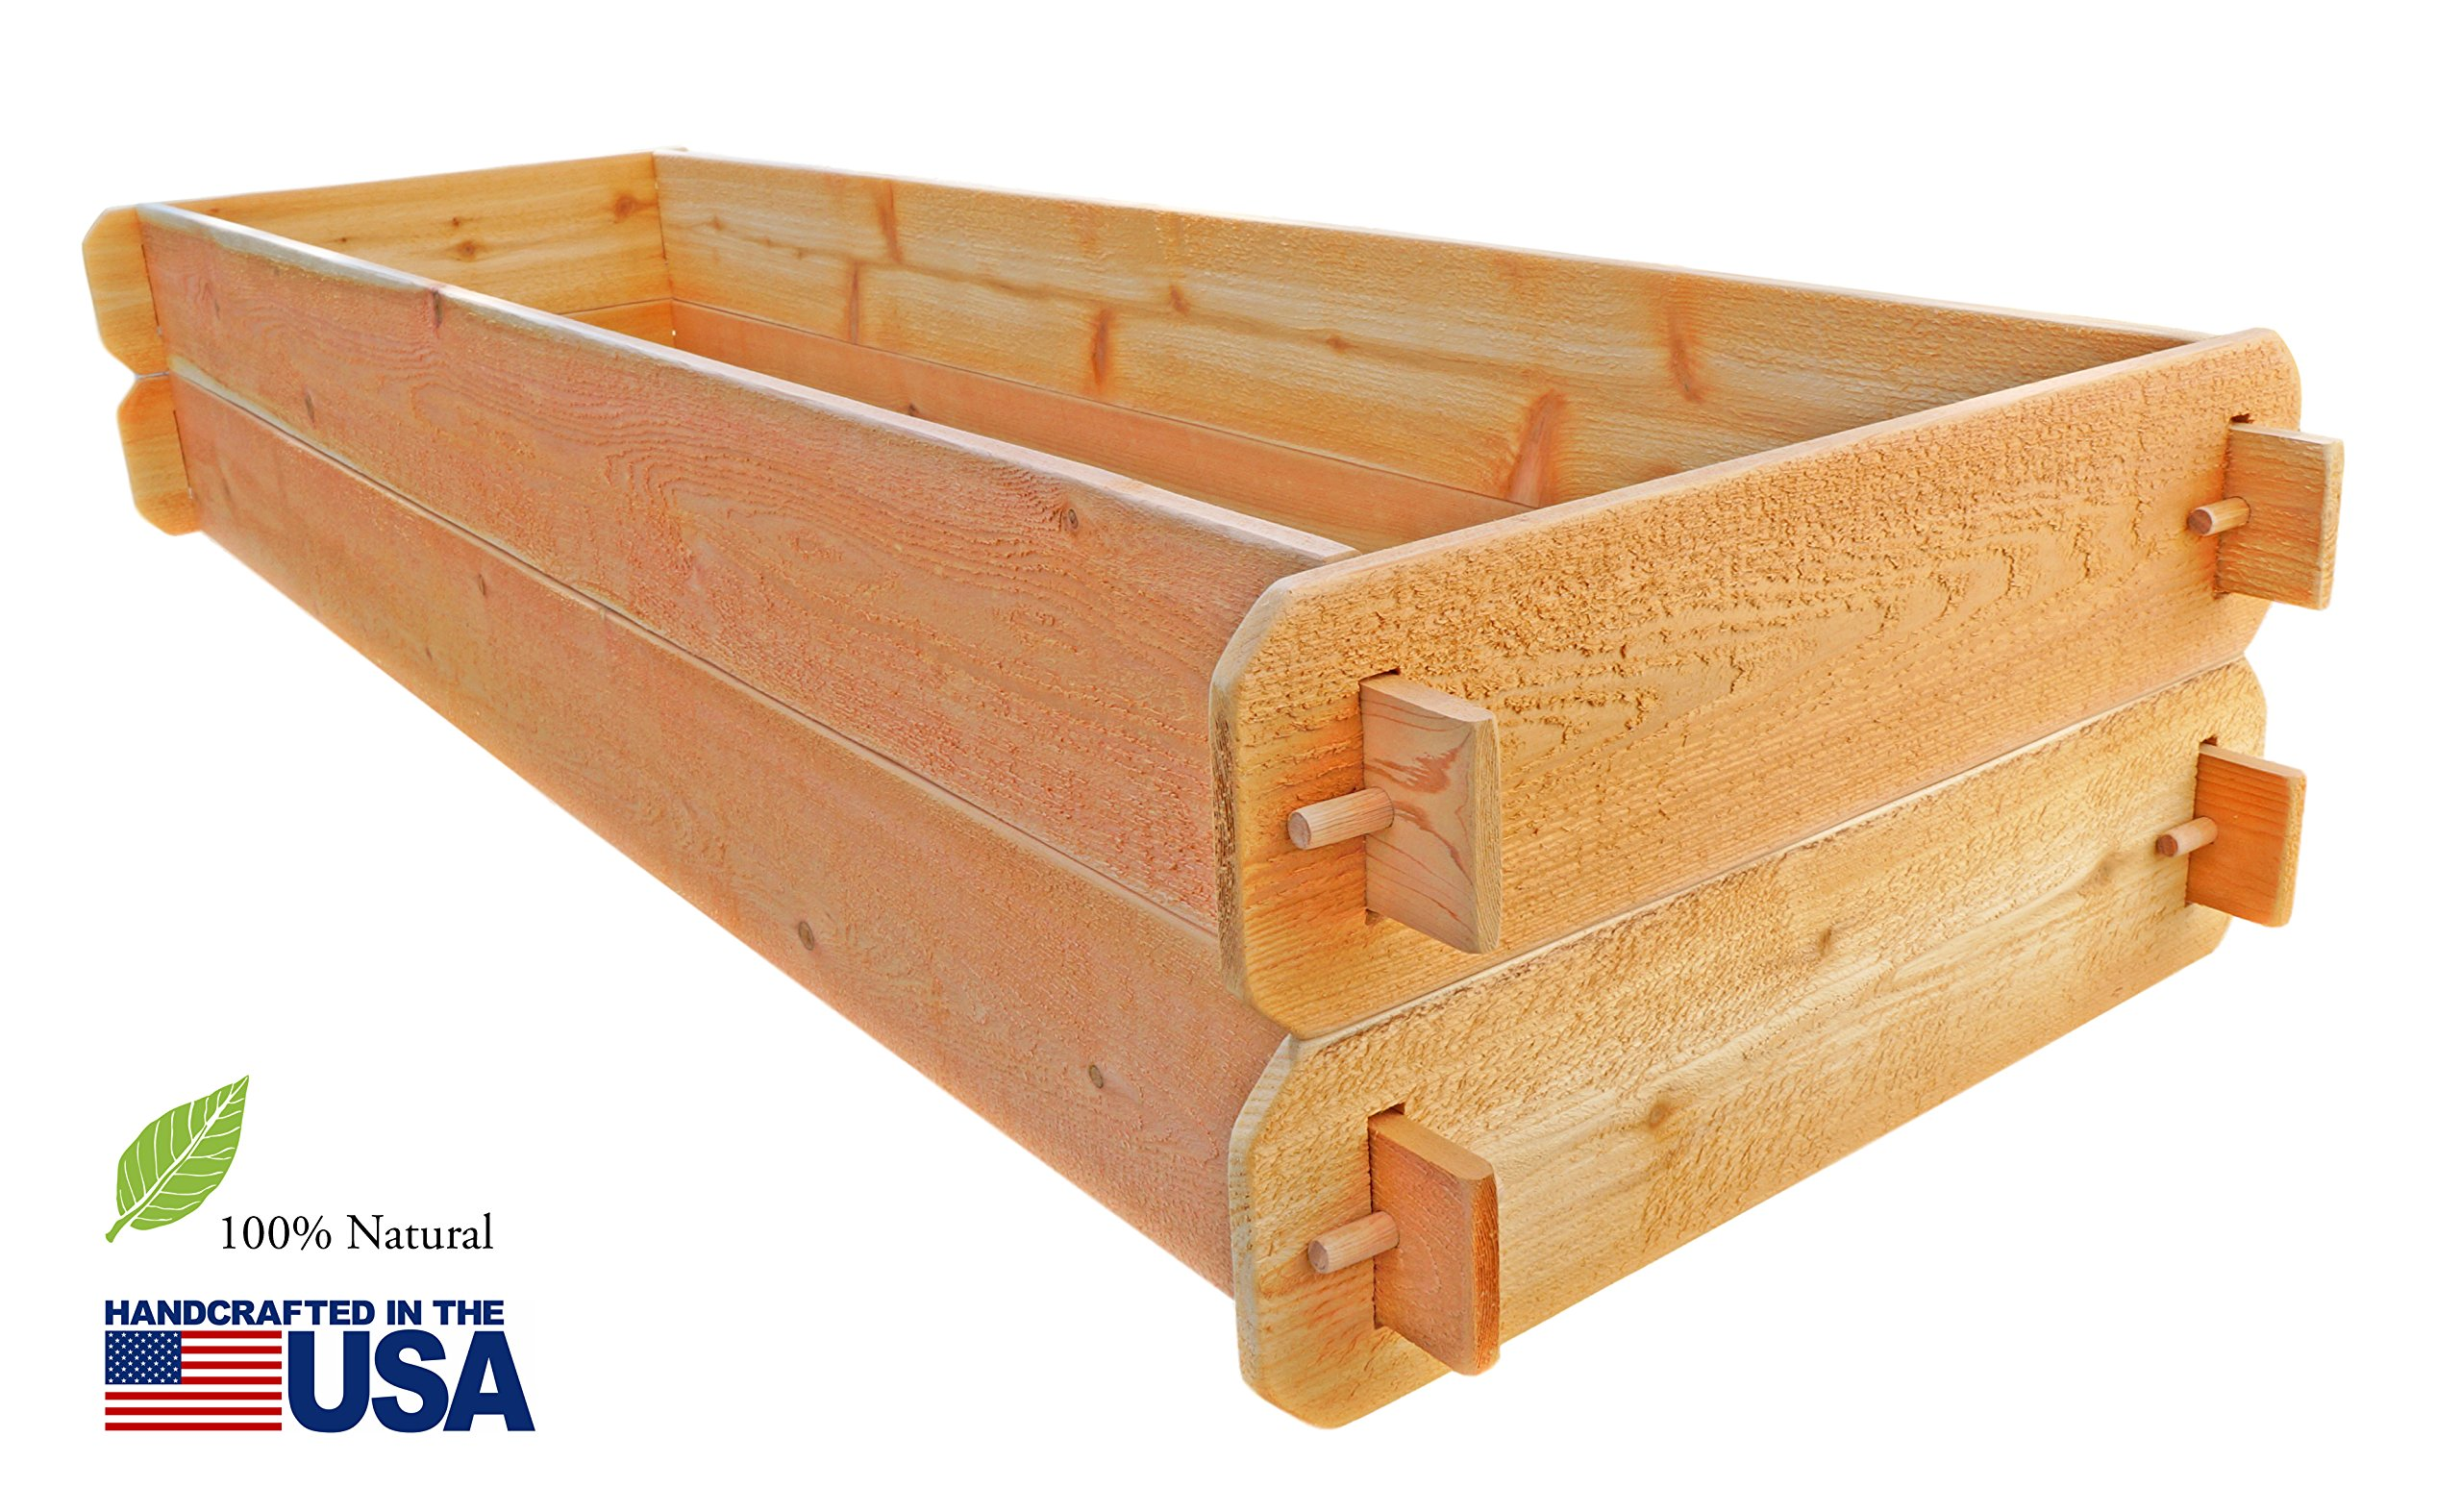 """Timberlane Gardens Raised Bed Kit Double Deep (Two) Western Red Cedar with Mortise and Tenon Joinery, 24"""" W x 72"""" L 1 <p>Raised garden bed kit dimensions: 2 feet wide x 6 feet long (6 inches deep) and 2 feet wide x 6 feet long (6 inches deep). Depth is 12 inches when stacked. 5/8"""" thick. Inner (planting) dimensions are a bit smaller due to the mortise & tenon joints. Raised Garden Bed Kit Proudly Made in Homer Glen, Illinois USA. Constructed of Select Western Red Cedar. Aromatic and Naturally Insect & Rot Resistant. Handcrafted Mortise & Tenon Joinery. The Strongest Corner Joints Available. Easy to Assemble in Seconds, No Tools Required. Perfect for a Children's Garden. Splinter Free. 100% Natural and Chemical Free. Safe for Vegetables and Best for Organic Gardening.</p>"""